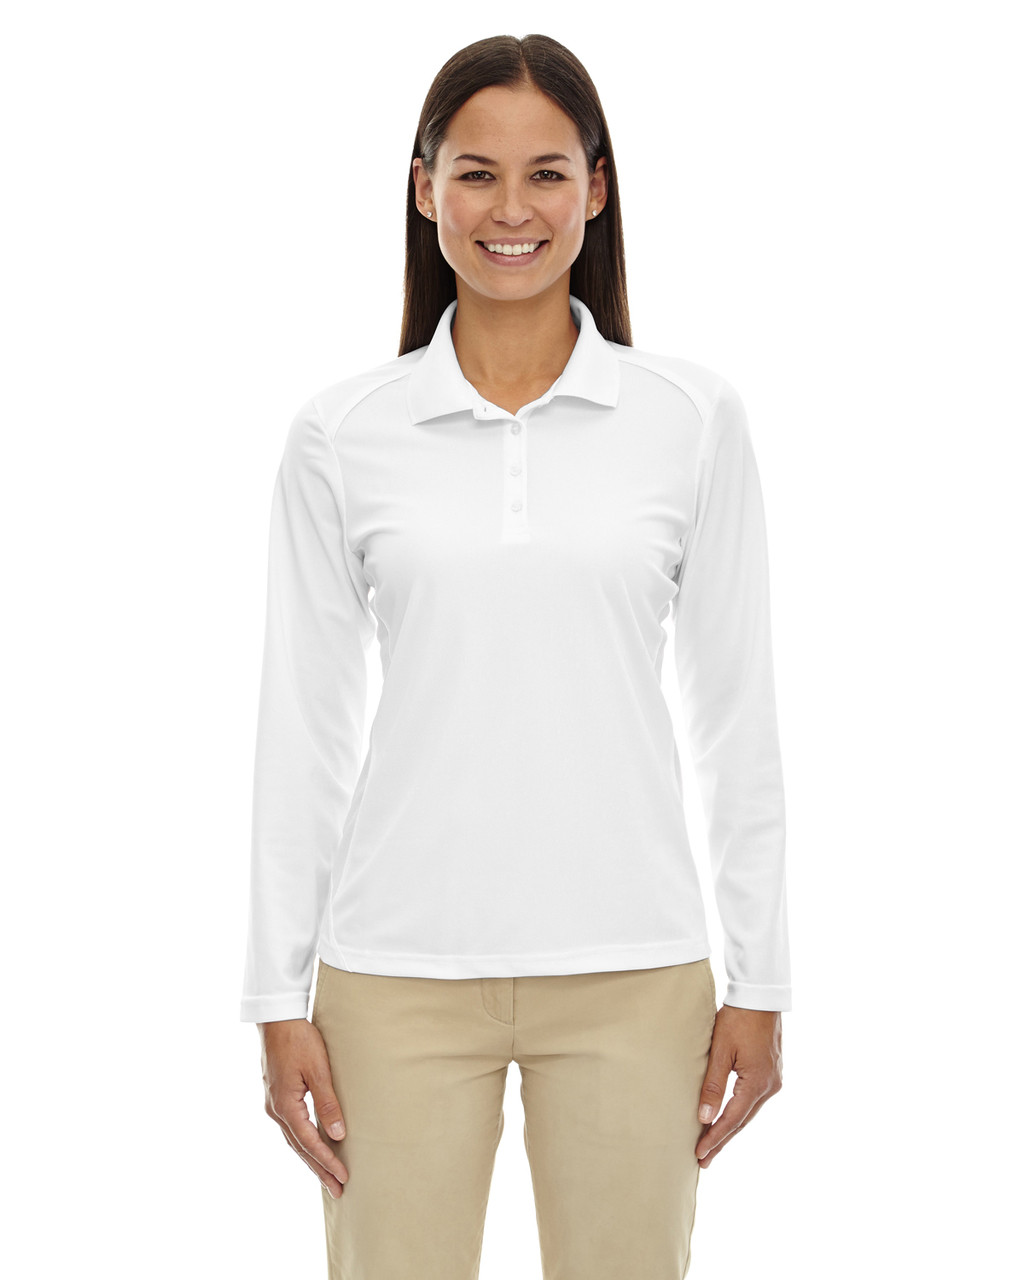 White - 75111 Ash City - Extreme Eperformance Ladies' Long-Sleeve Polo Shirt | BlankClothinkg.ca